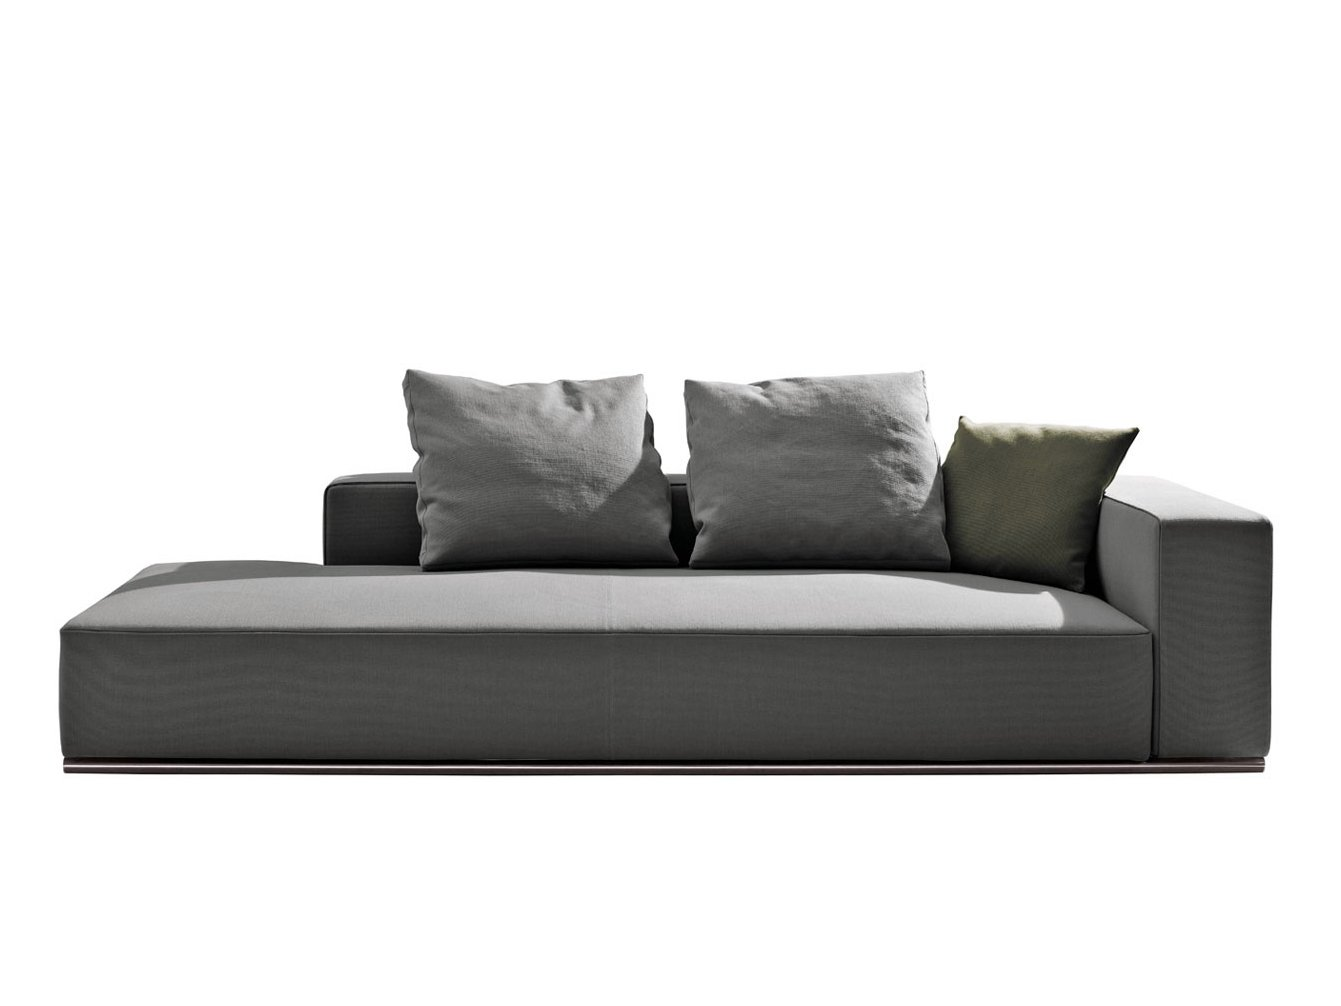 m ridienne rembourr e en tissu collection andy 39 13 by b b italia design paolo piva. Black Bedroom Furniture Sets. Home Design Ideas